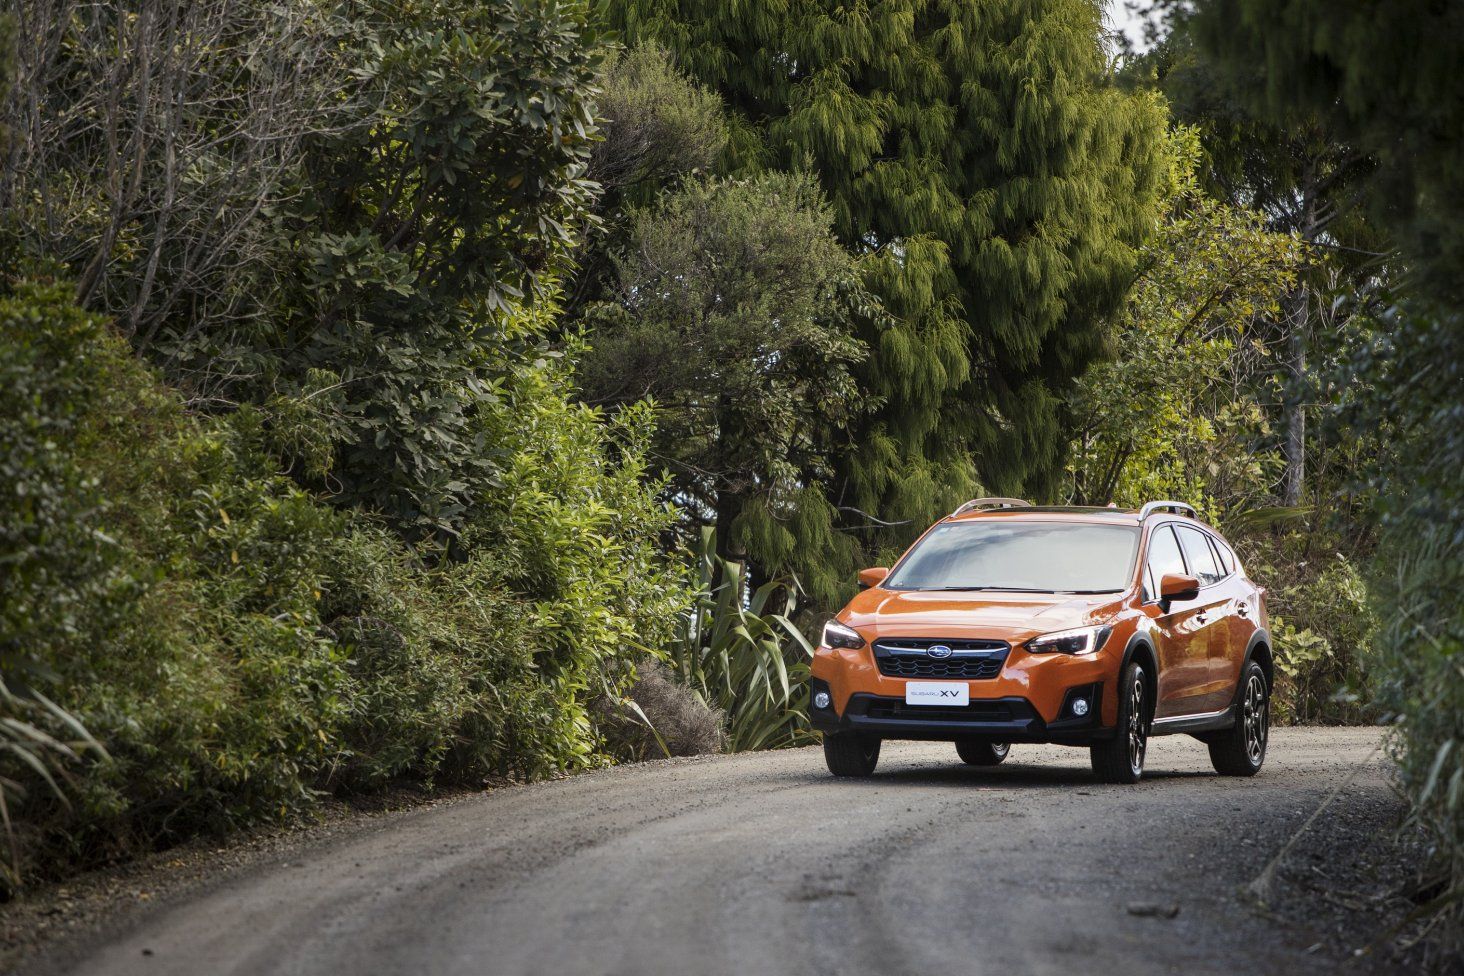 The Subaru XV (pictured) and Impreza models have each been named the safest in their class of Small Family Cars in the 2017 Euro NCAP *1 Safety Awards.